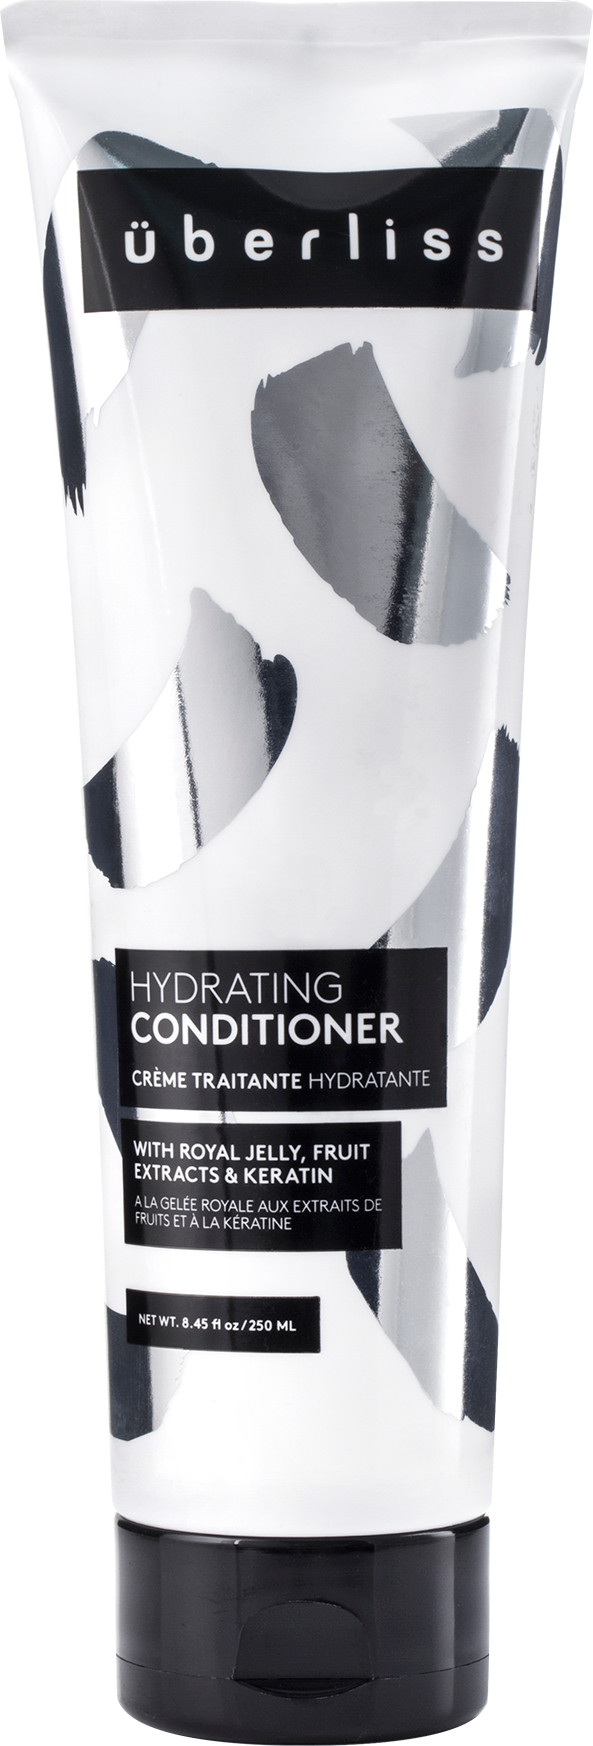 Uberliss-Hydrating-Conditioner-Packaging